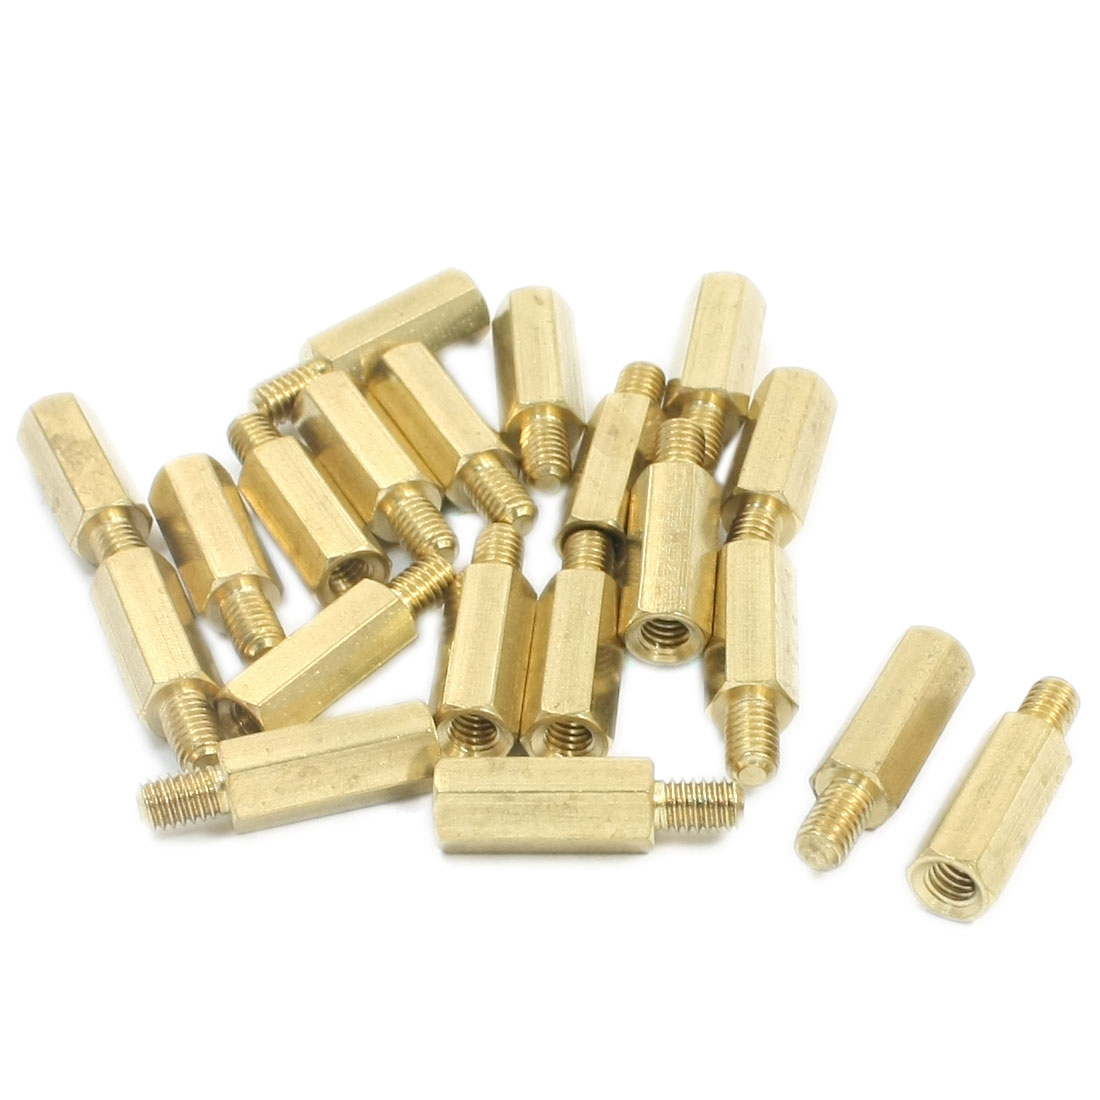 M3 x 15mm x 21mm Male to Female Gold Tone Brass Pillar PCB Hexagonal Nut Standoff Spacer 20 Pcs